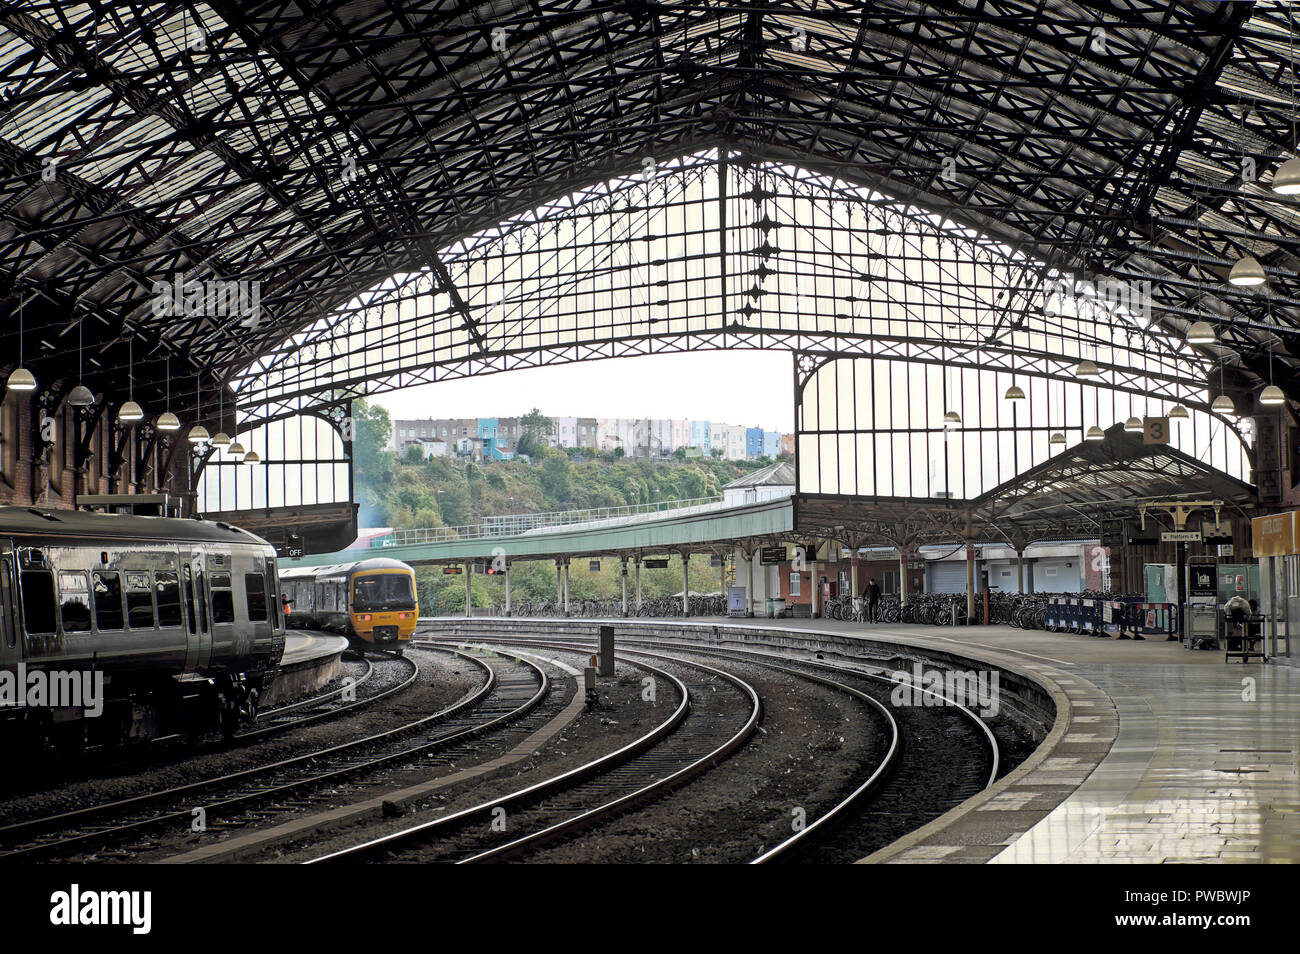 A view of the railway tracks and trains from inside Bristol Temple Meads train station in the city of Bristol England UK  KATHY DEWITT - Stock Image